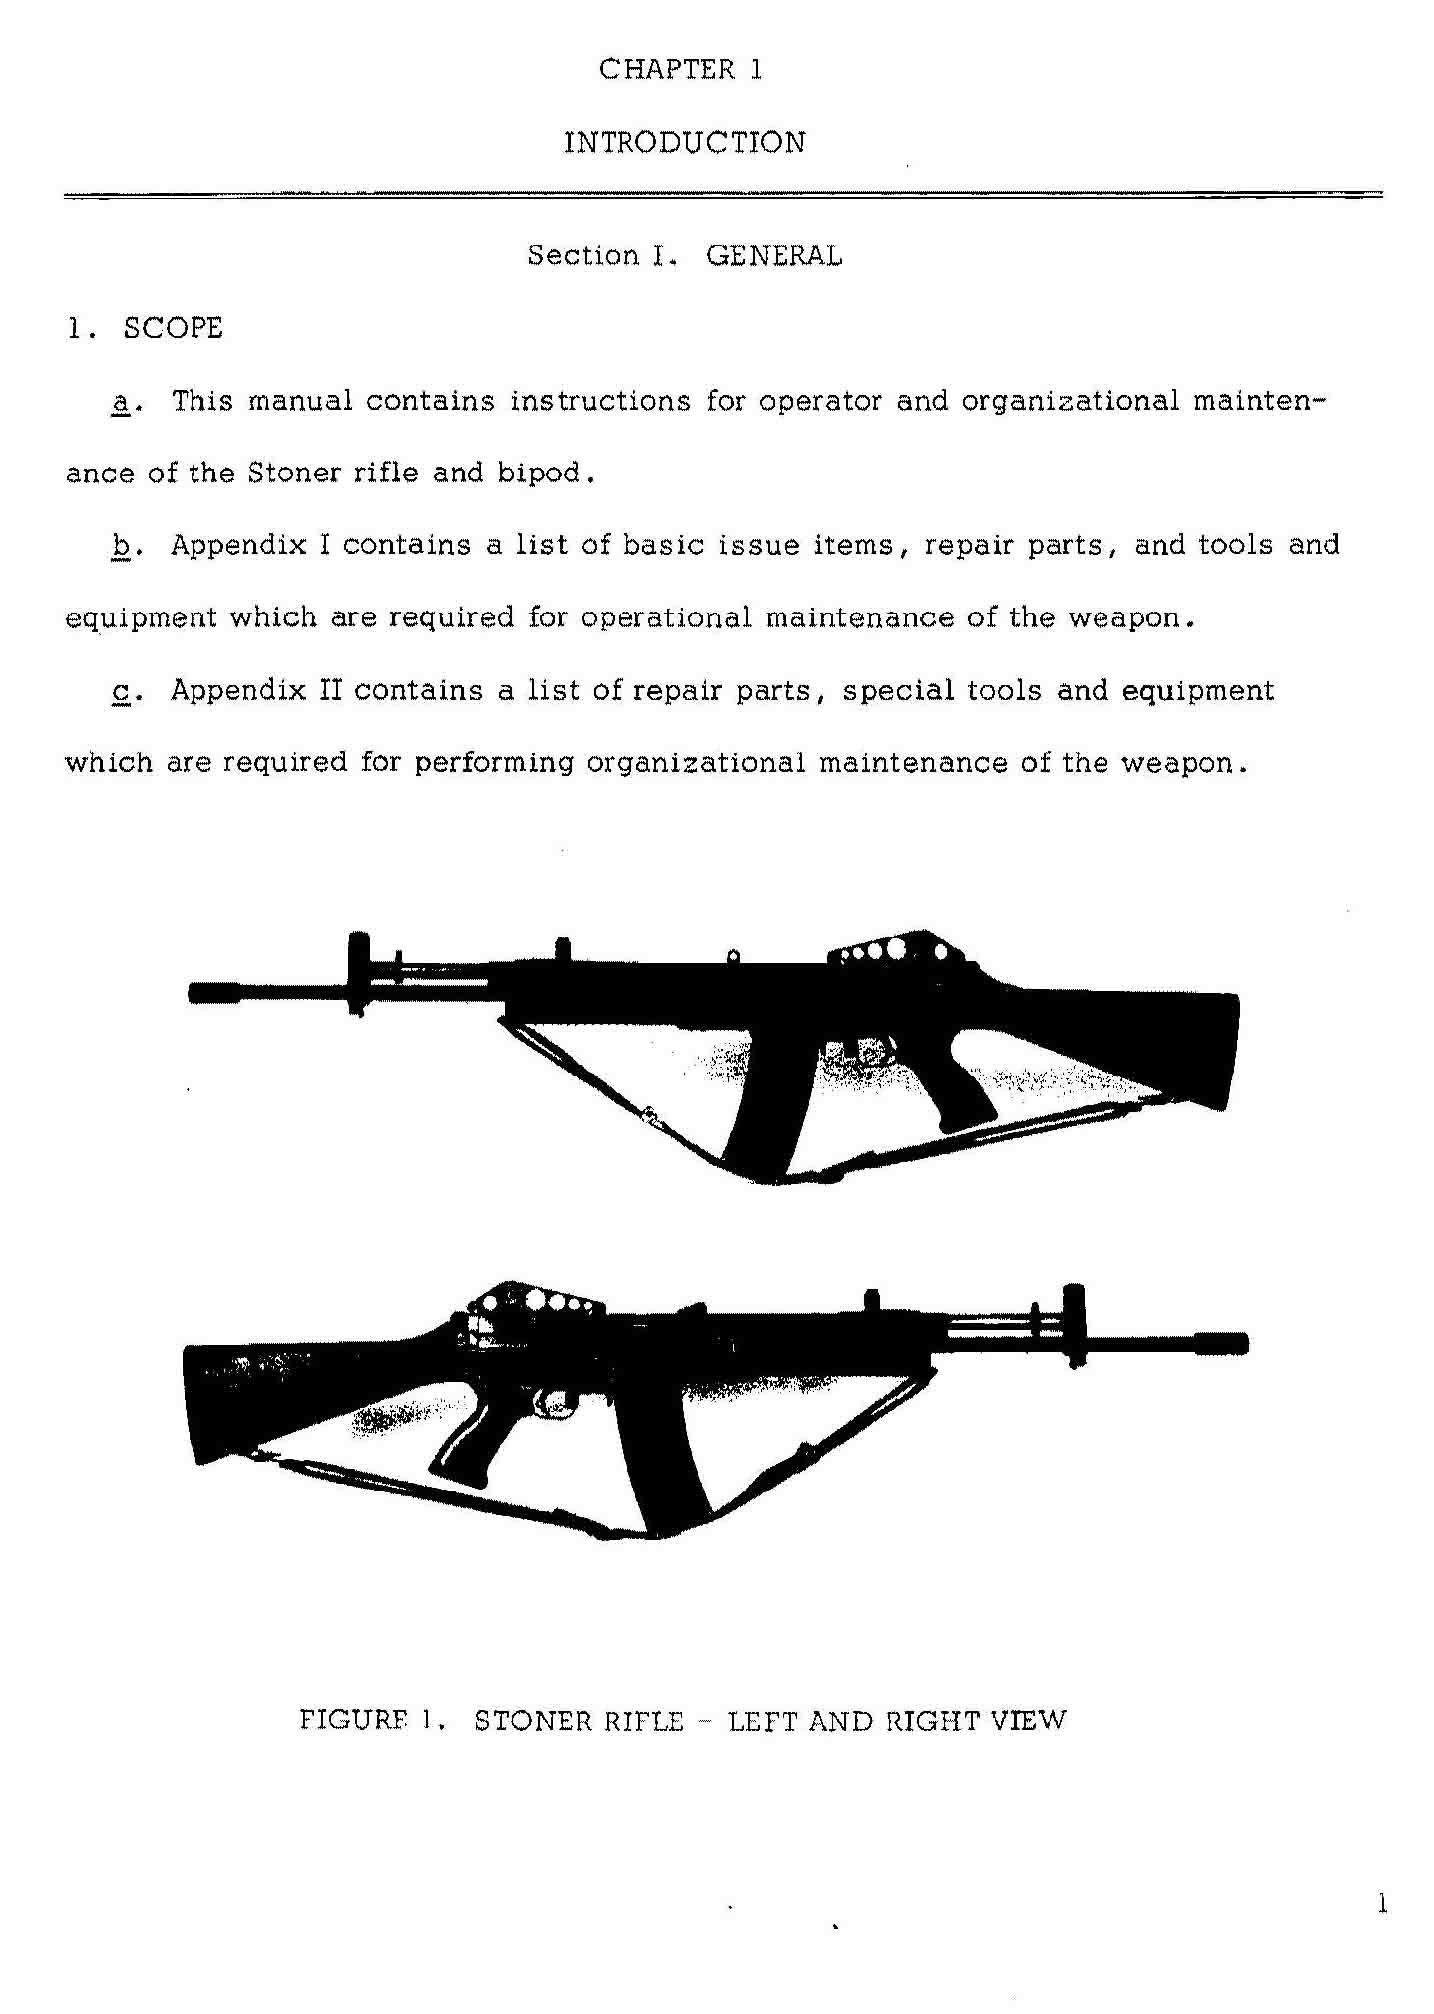 Stoner 63A Rifle Manual